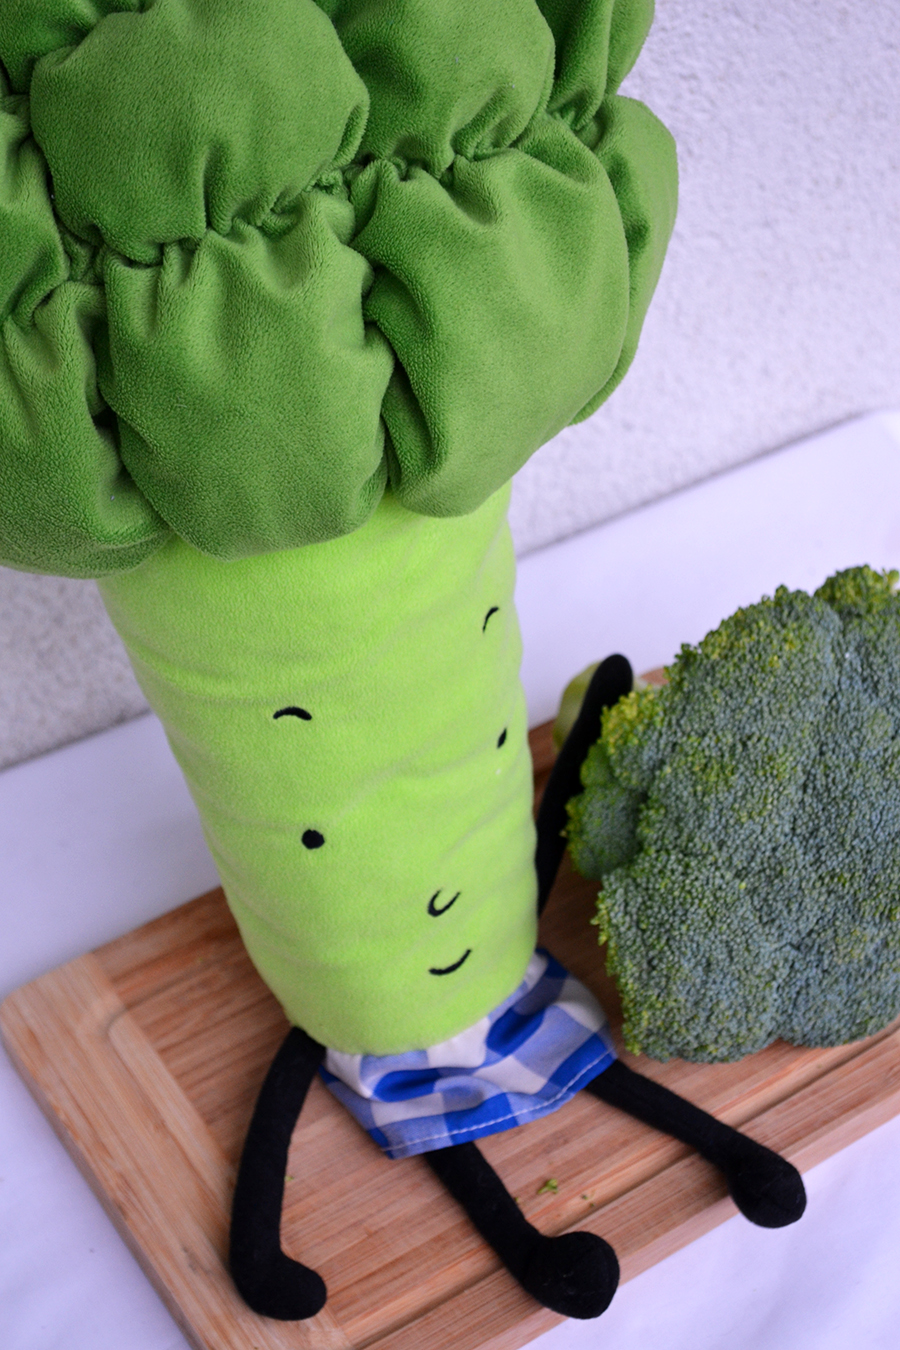 toy with broccoli